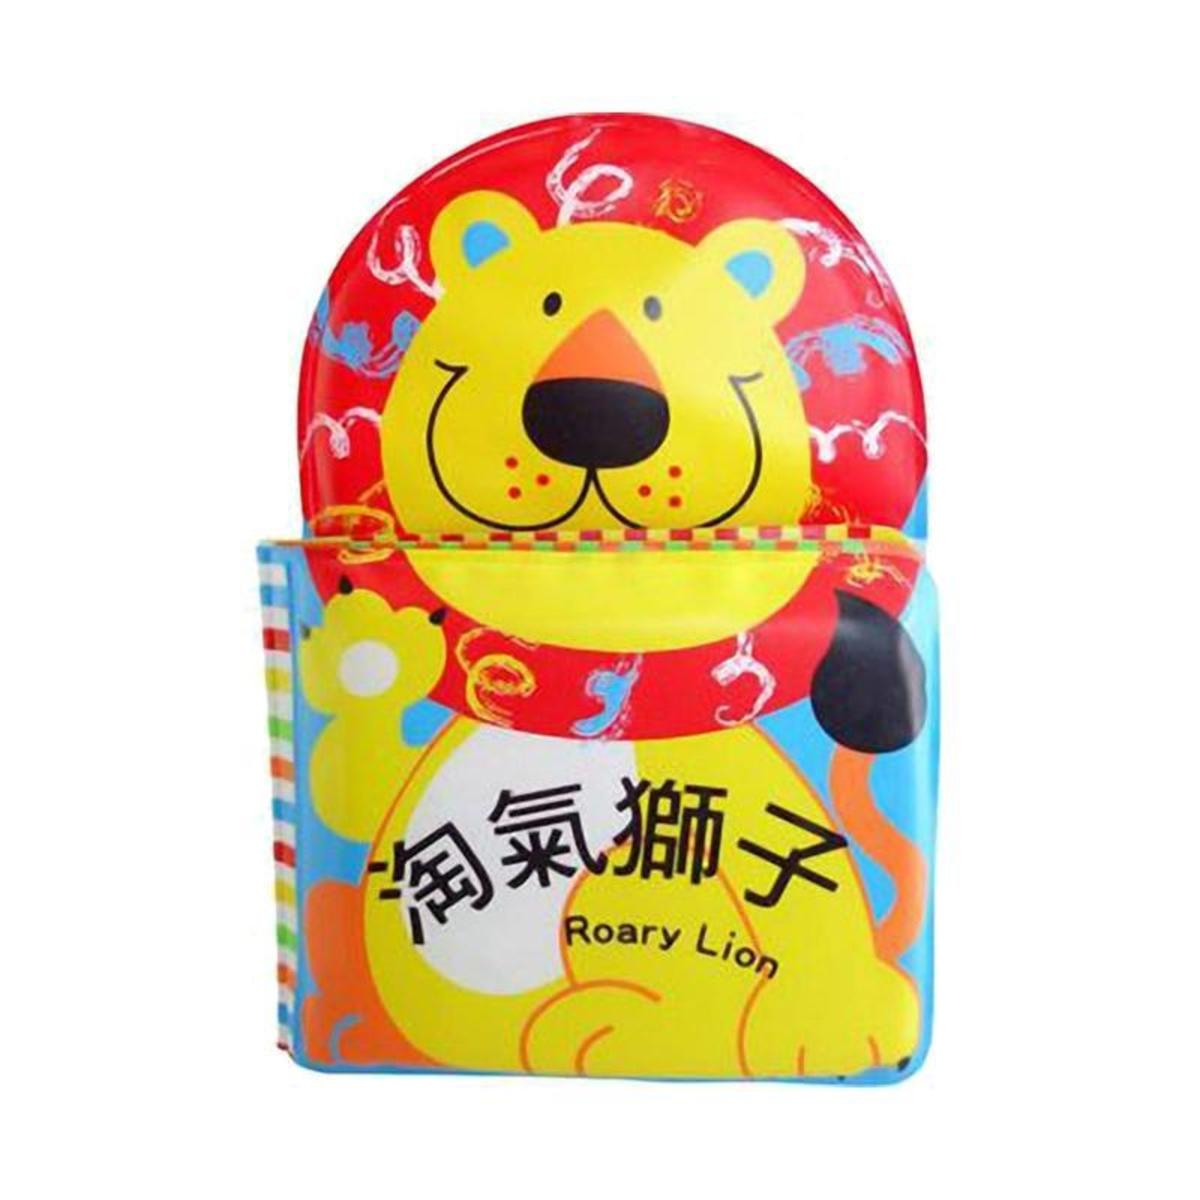 Publishing Children's Cognitive Game Bathing Book (4 models) Taiwan Import - Naughty lion